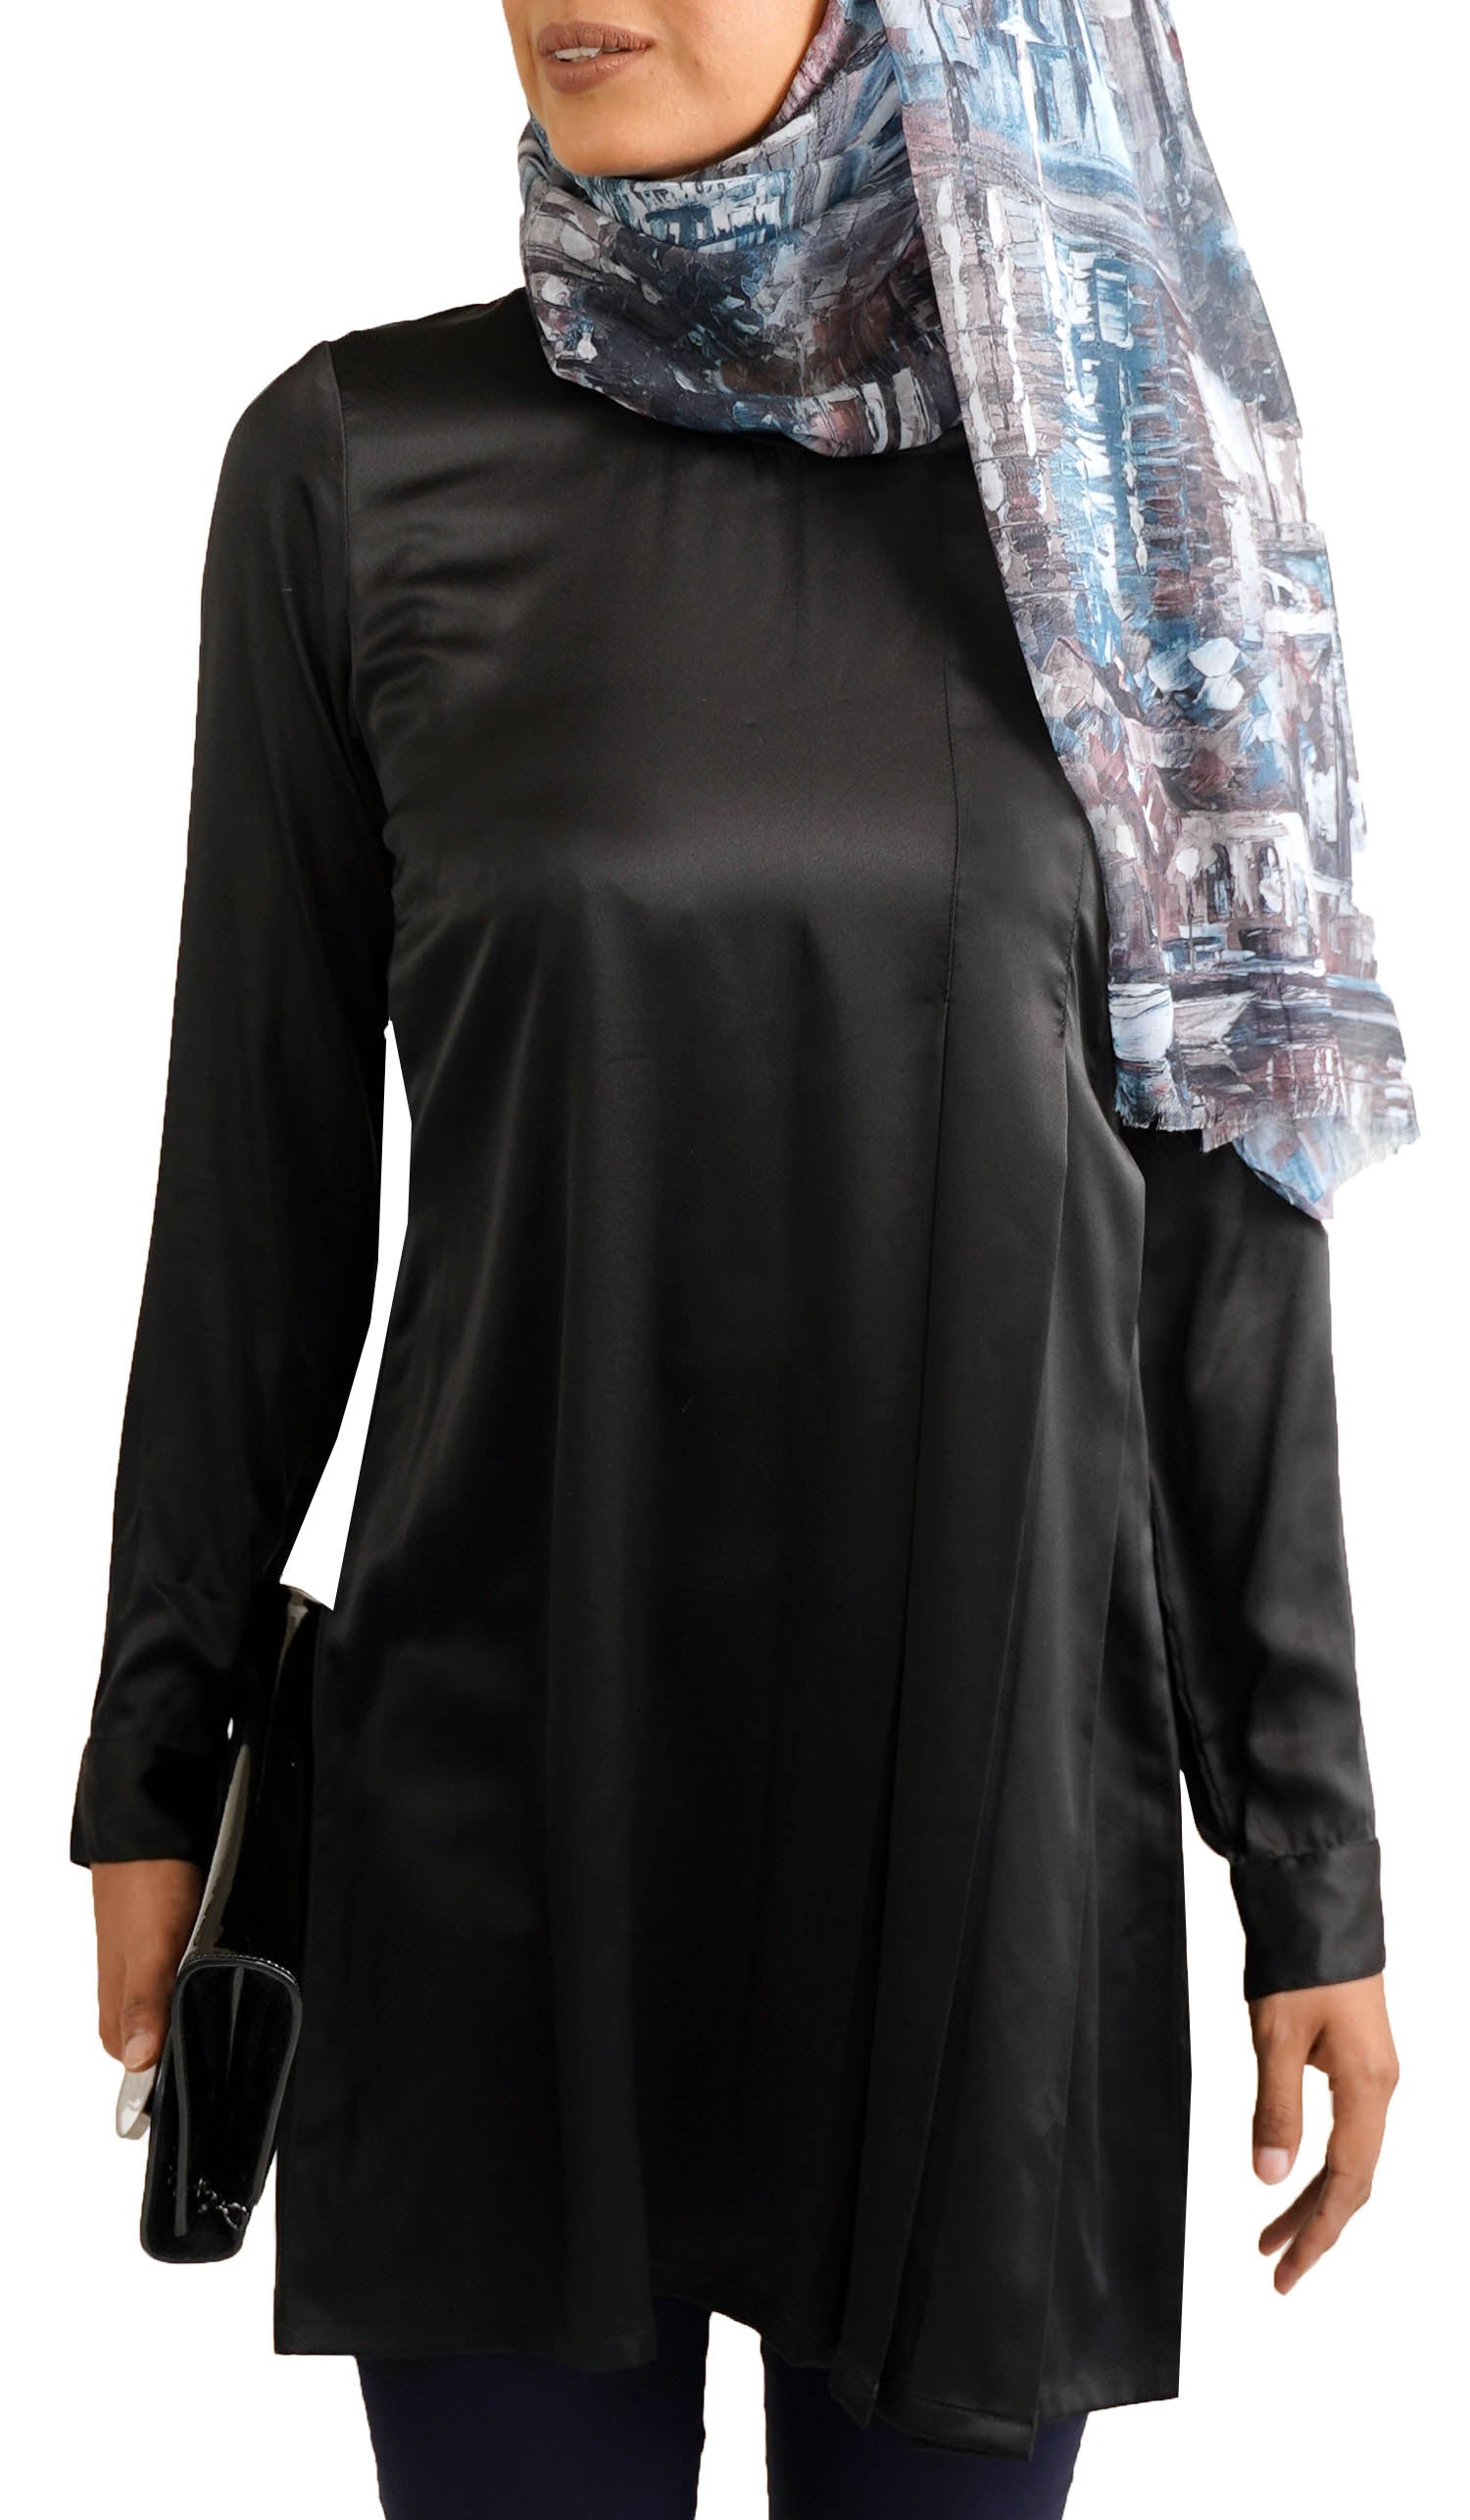 Althea Silky Formal Long Modest Tunic Dress - Black